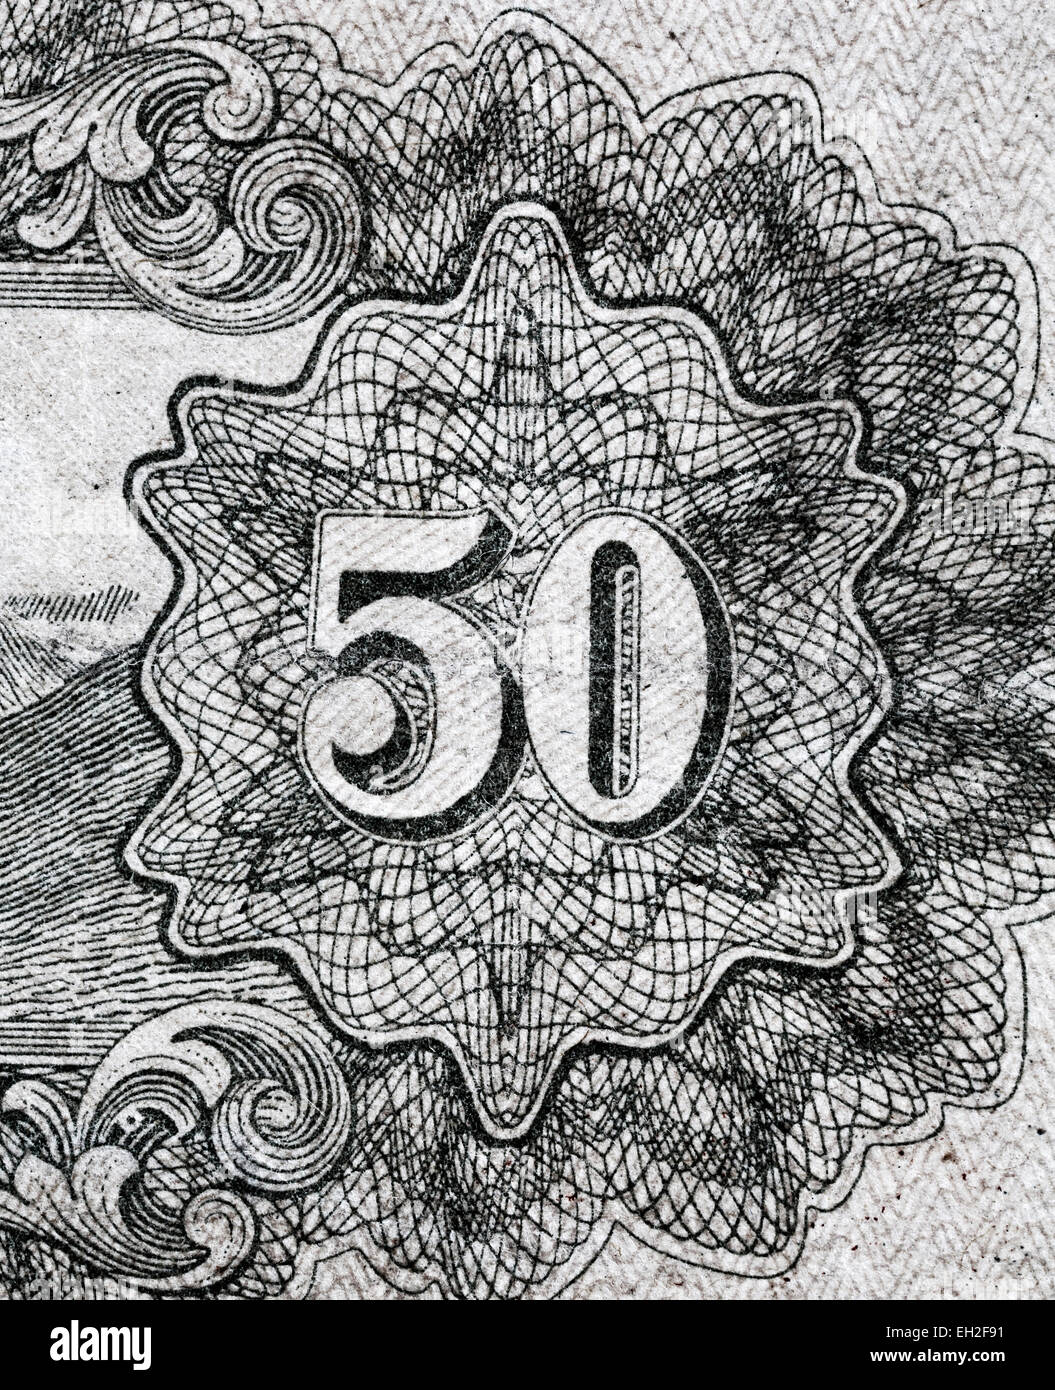 50 numeral from 50 sen banknote, Japan, 1943 Stock Photo